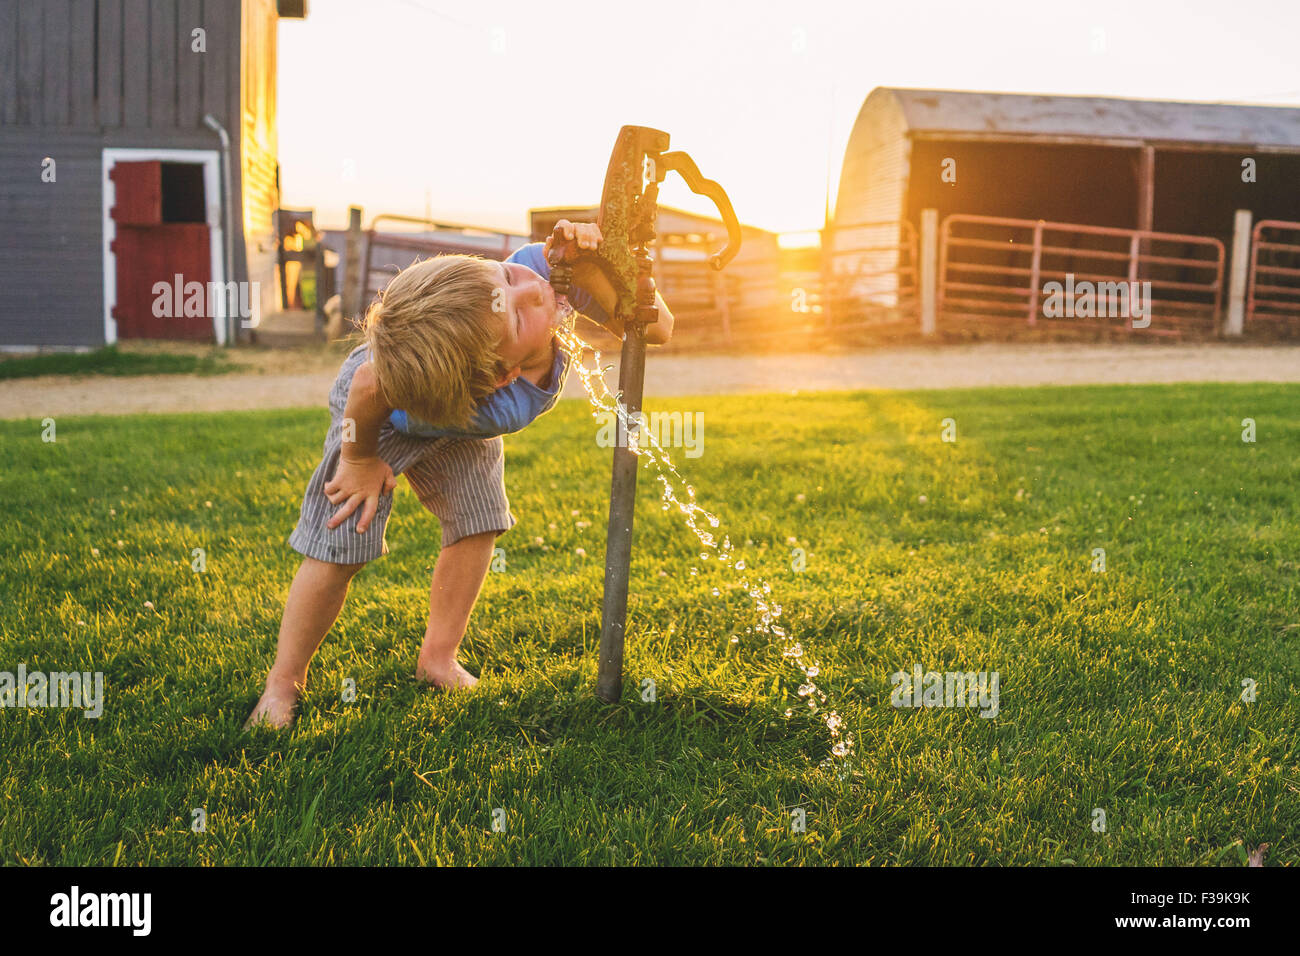 Boy drinking water from tap on a farm - Stock Image